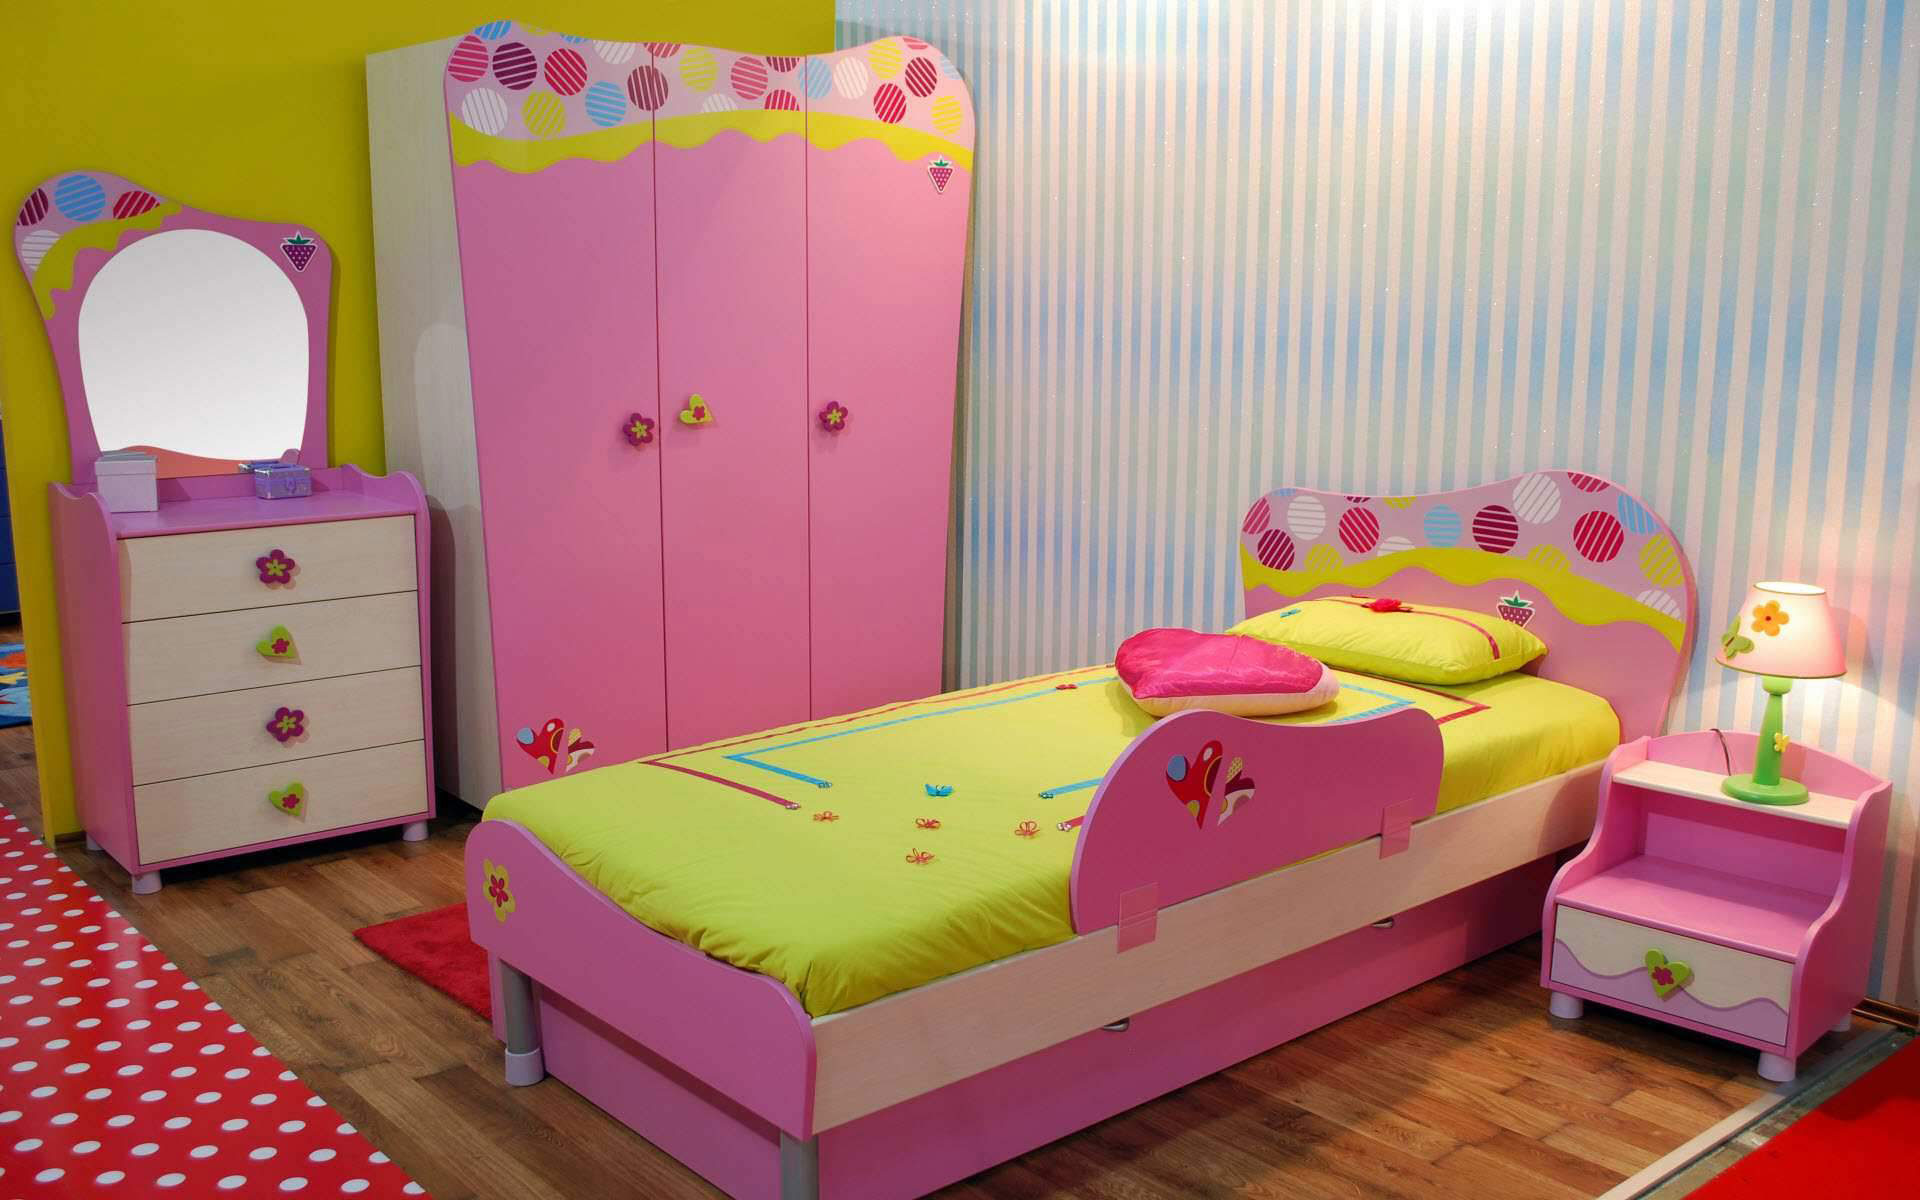 bedroom-remodel-ideas-unique-kids-bedroom-with-pink-color-interior-and-furniture-also-cute-desk-lamp-for-kids-bedroom-ideas-for-girls-awesome-wall-color-and-furnitures-also-cute-bedroom-accessories